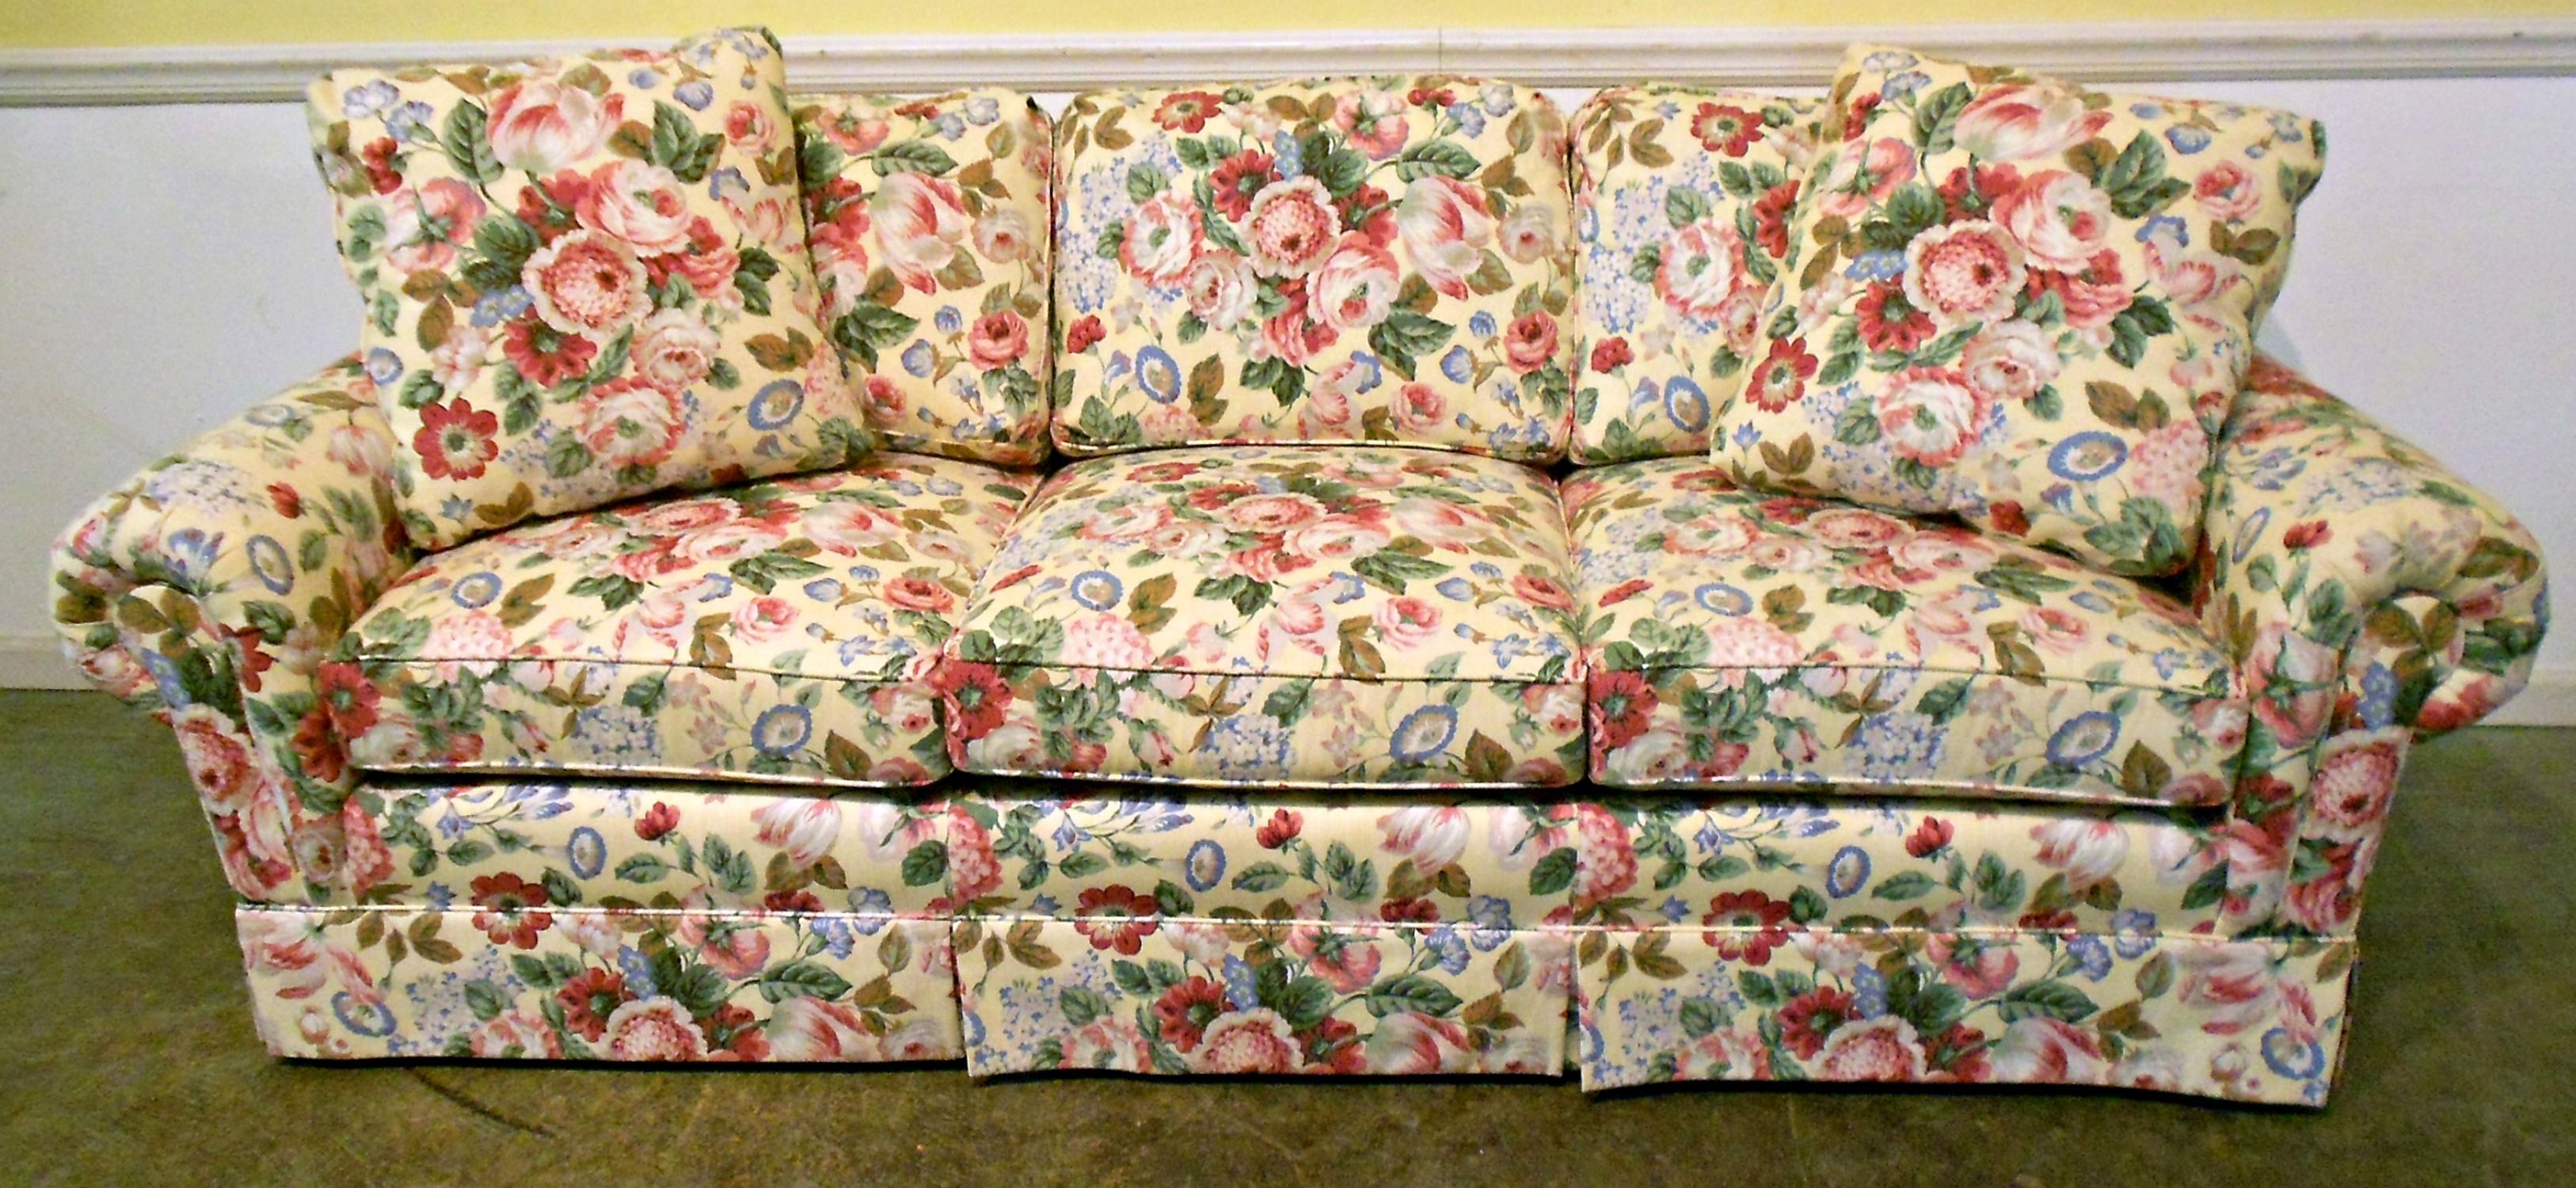 Fl Print Fabric Sofas Https Wp Me P8owwu 8pc